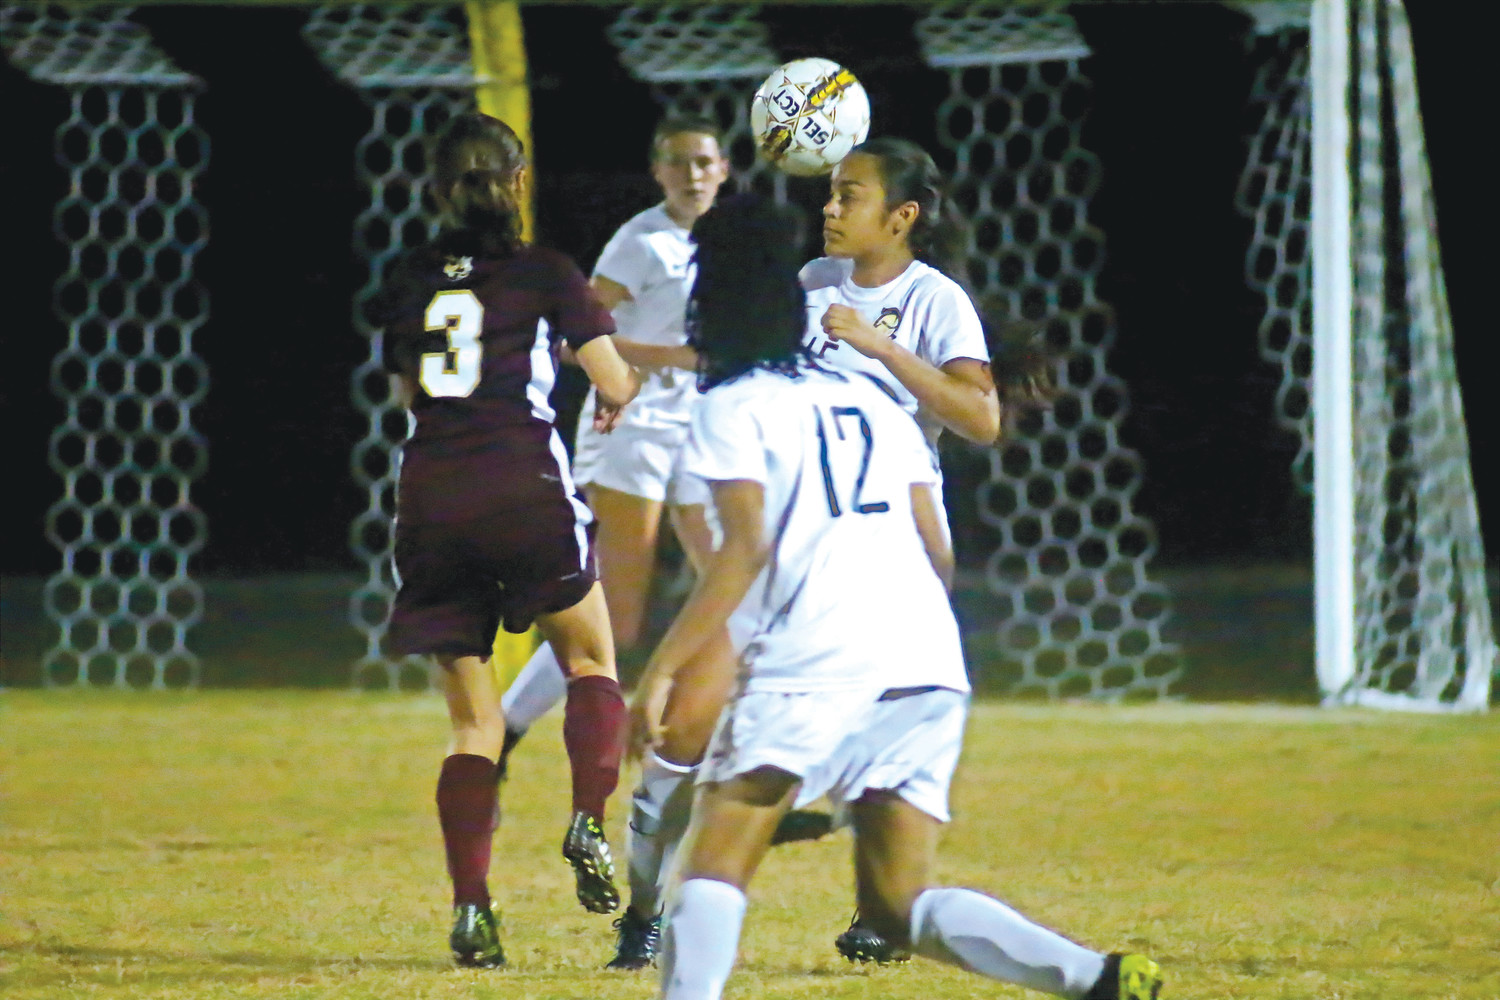 Oakleaf defender Brianna Olazabal gets a head on loose ball in front of Knights' net.